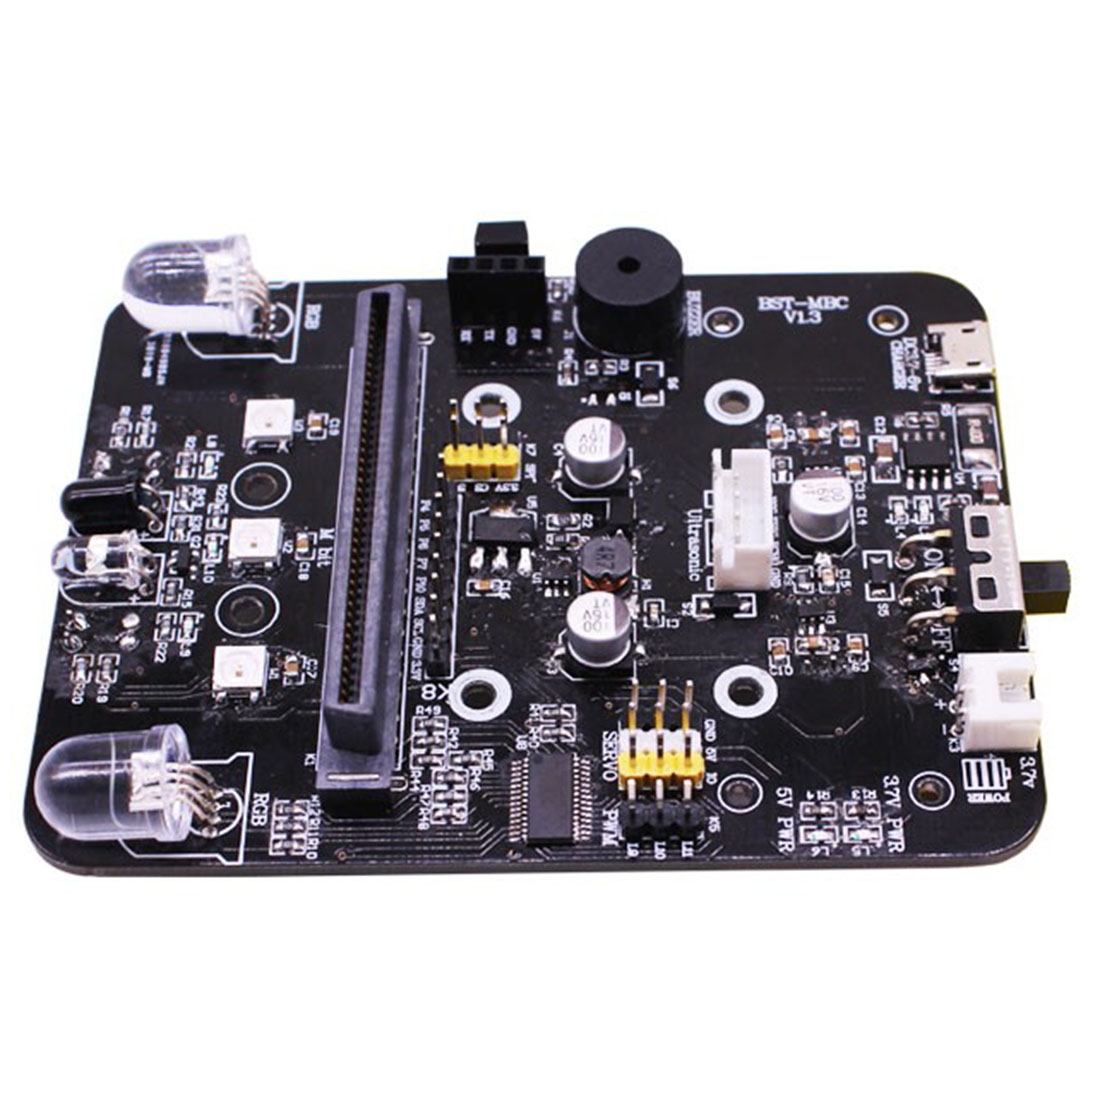 High Tech Toys Multifunction Expansion Board Learning Kit for Stem Maker Education Programmable Toys Parts School Education